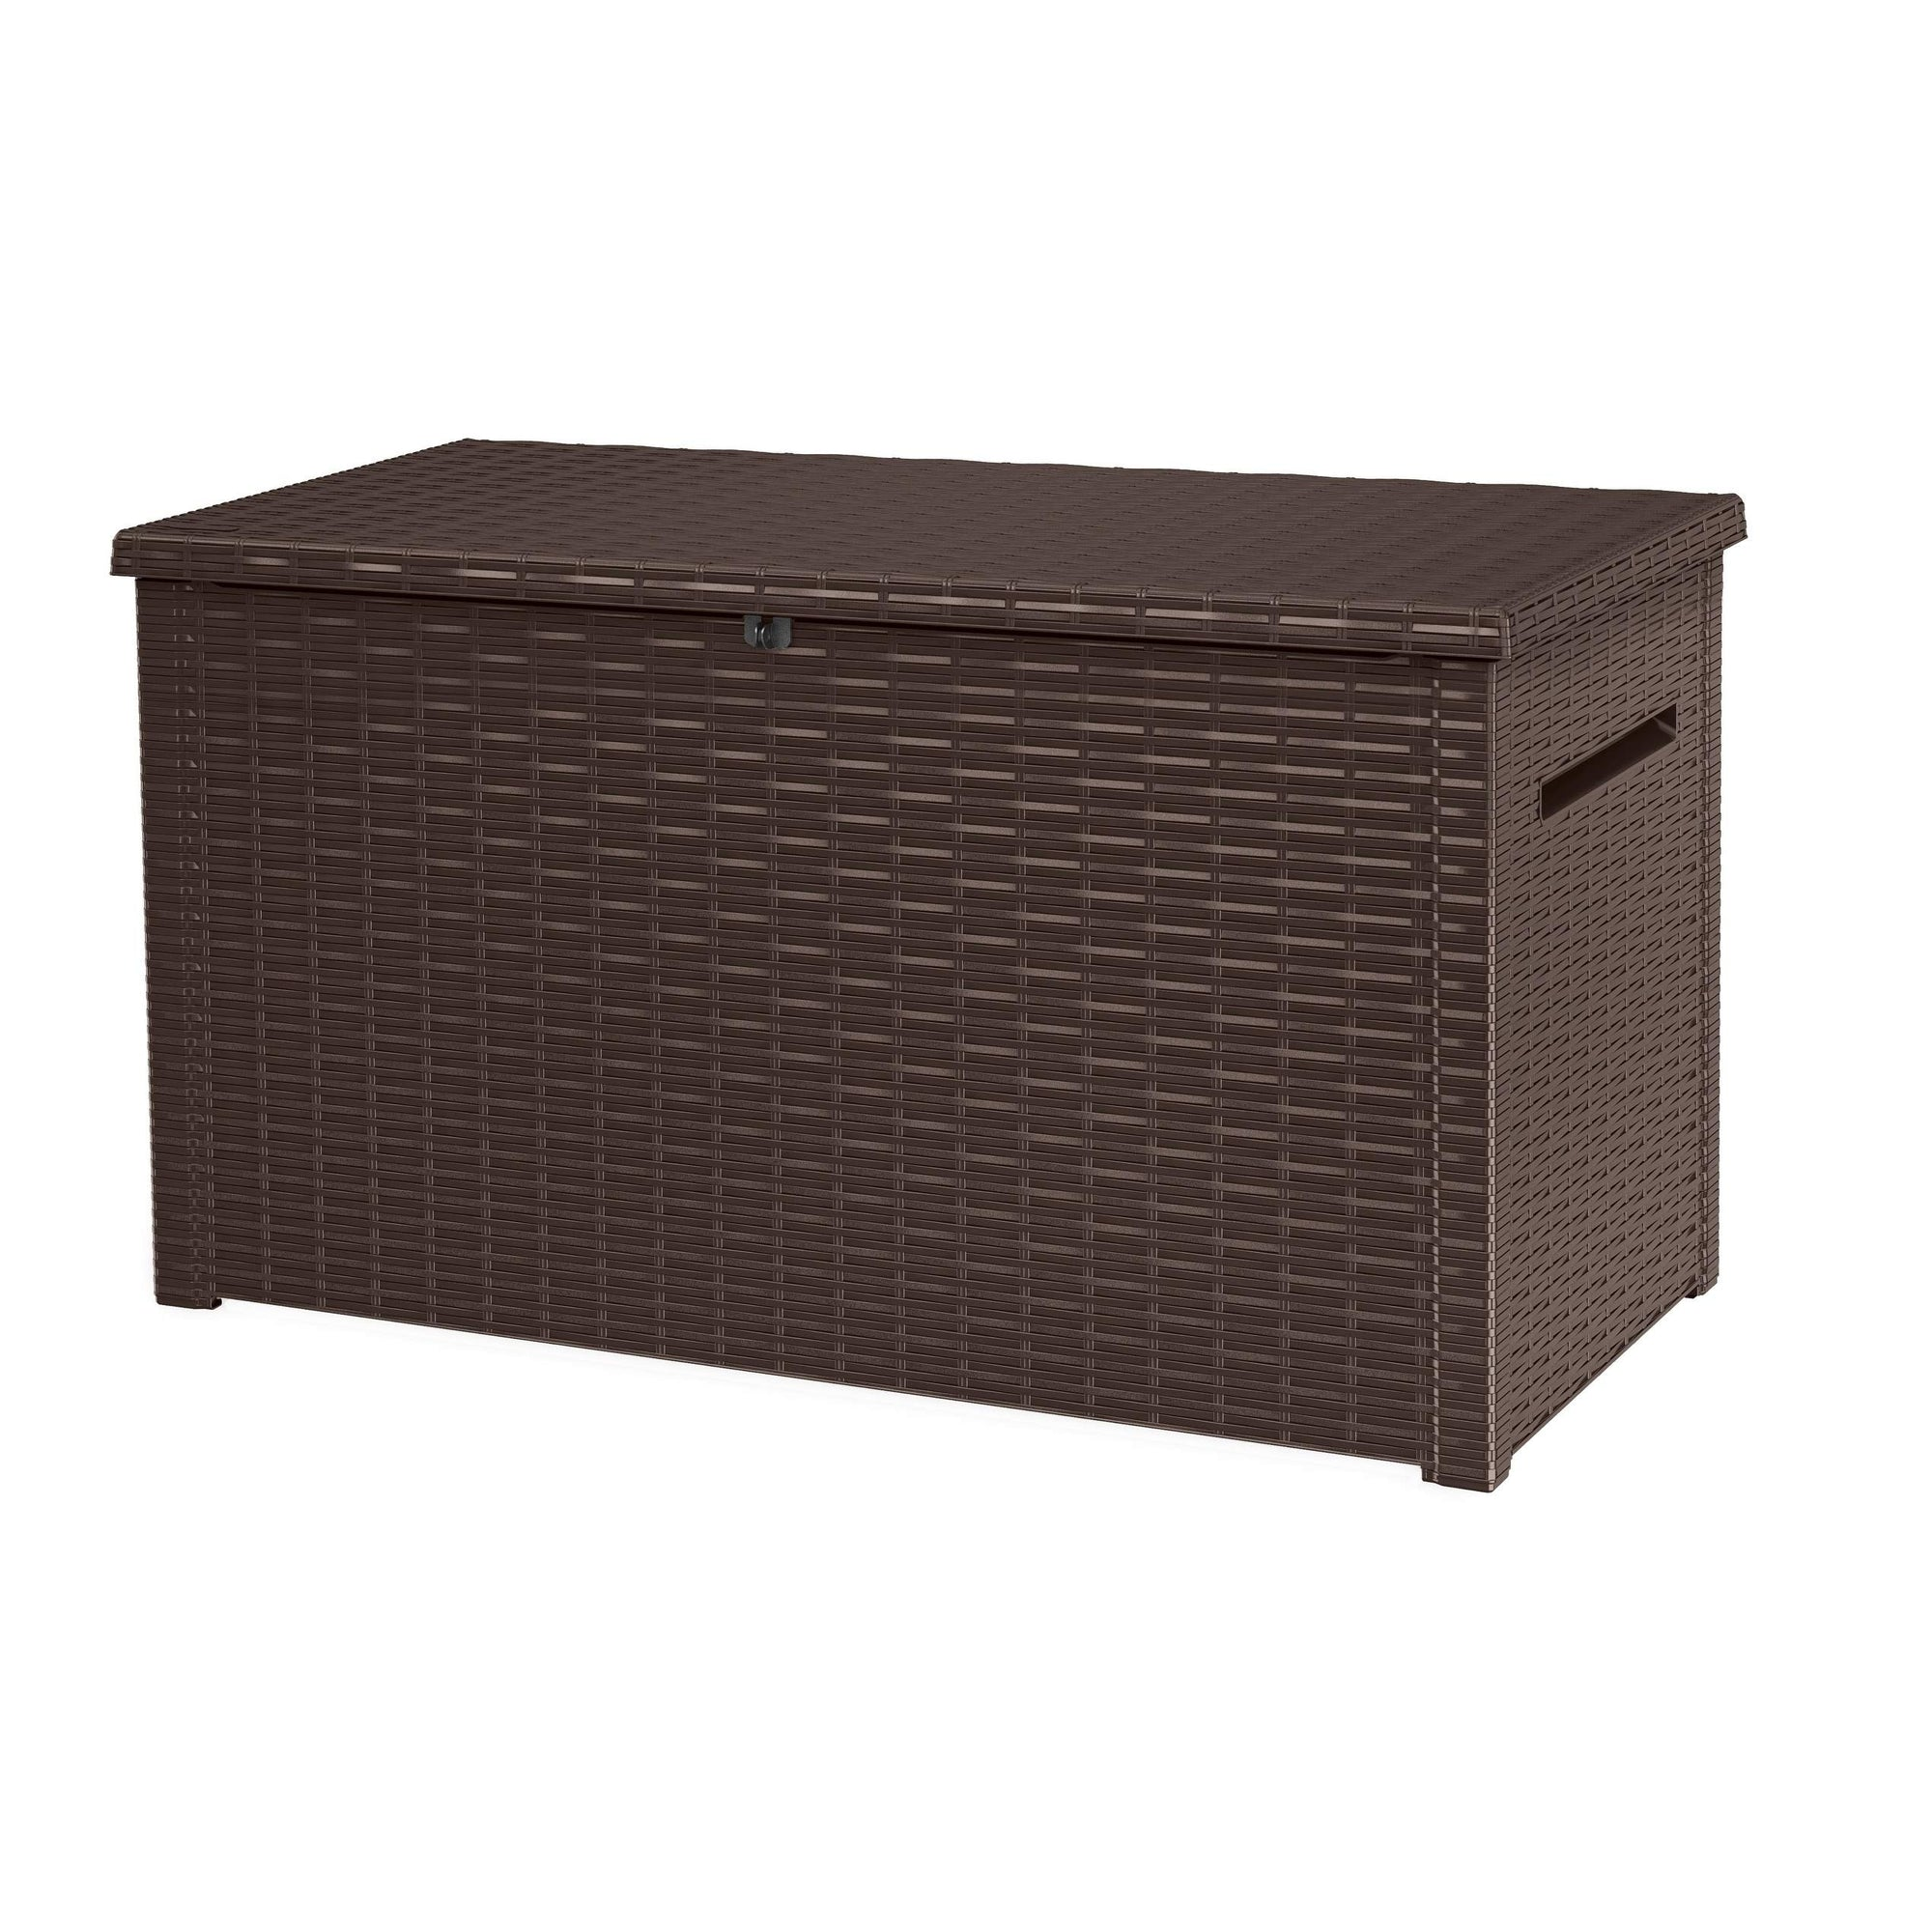 230 Gallon Plastic Resin Outdoor Deck Box Brown Lockable Uv Protected Water Resistant